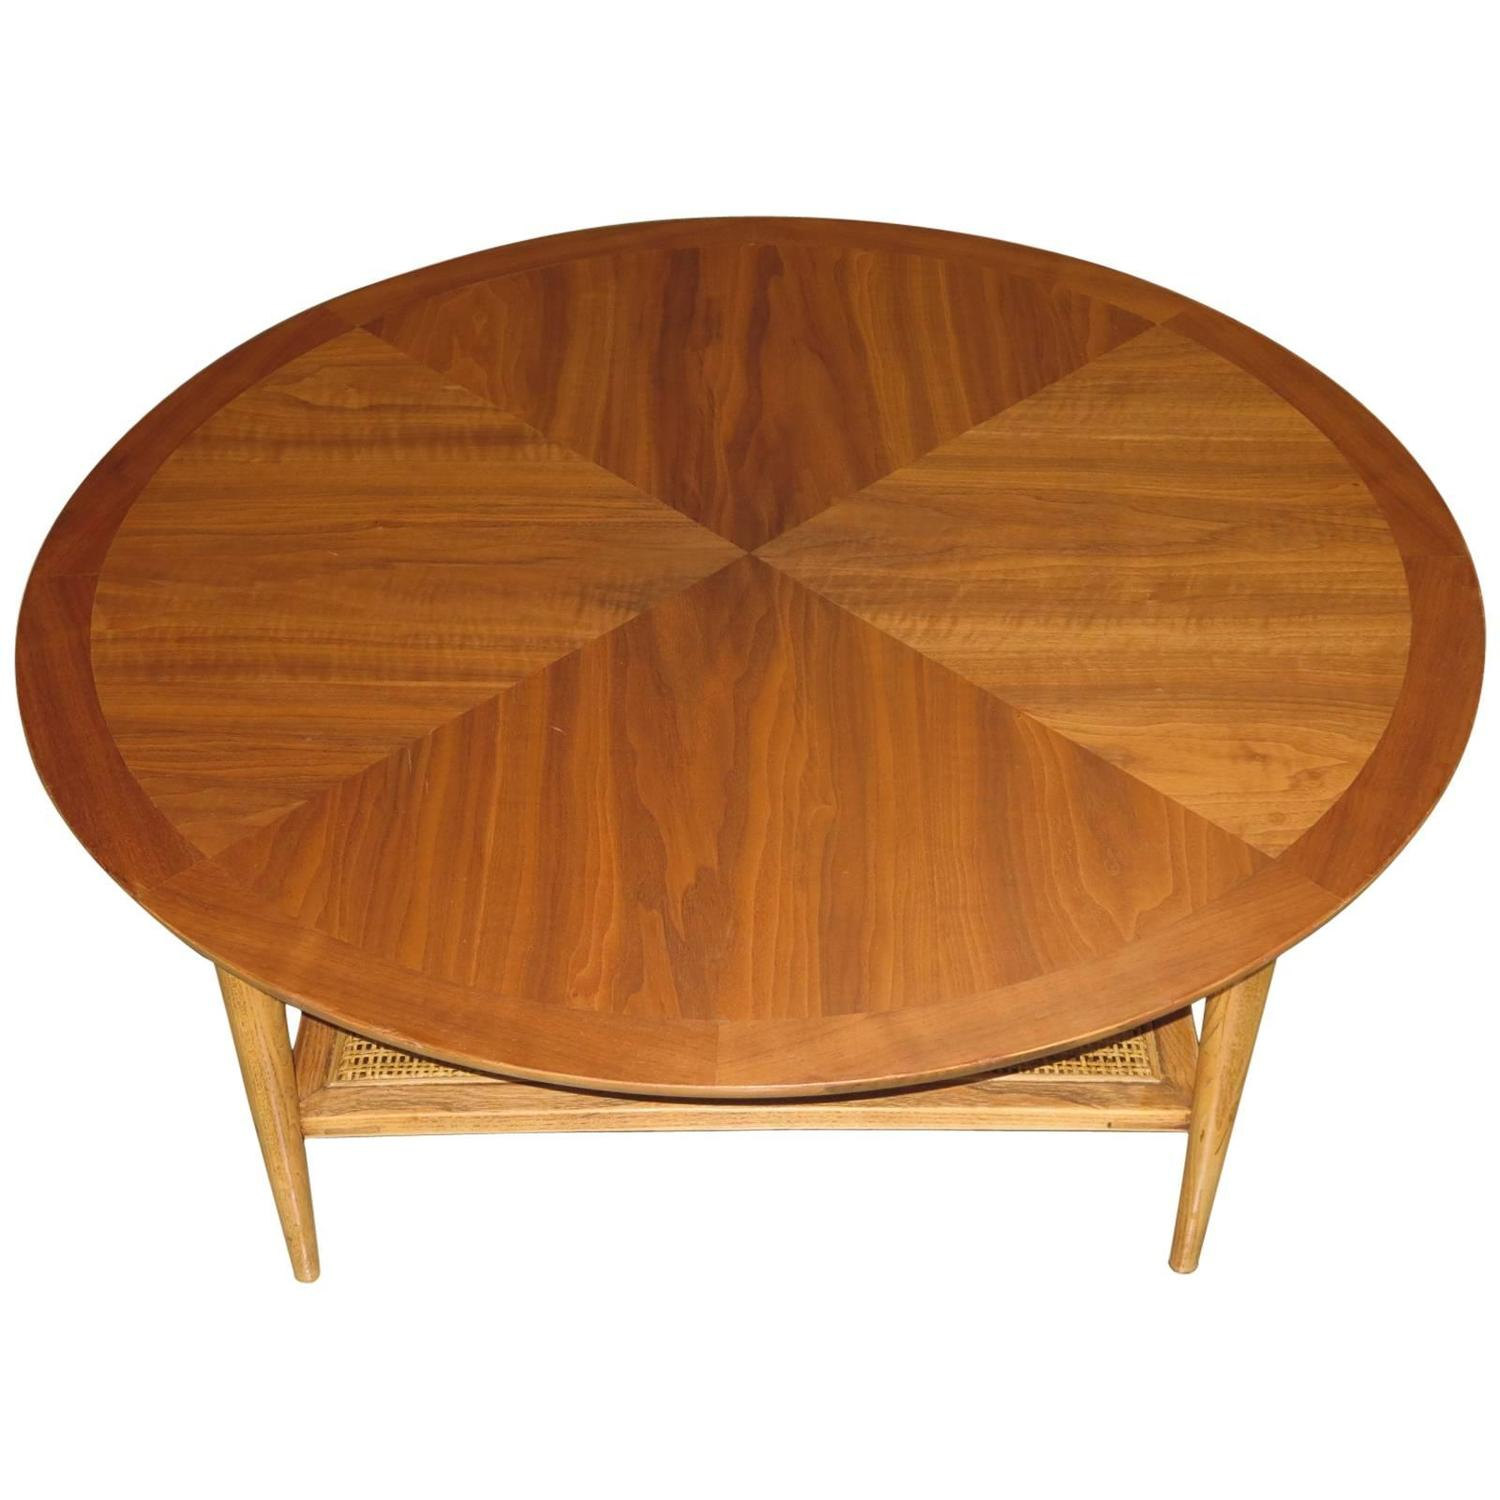 Round Coffee Table By Lane At 1stdibs